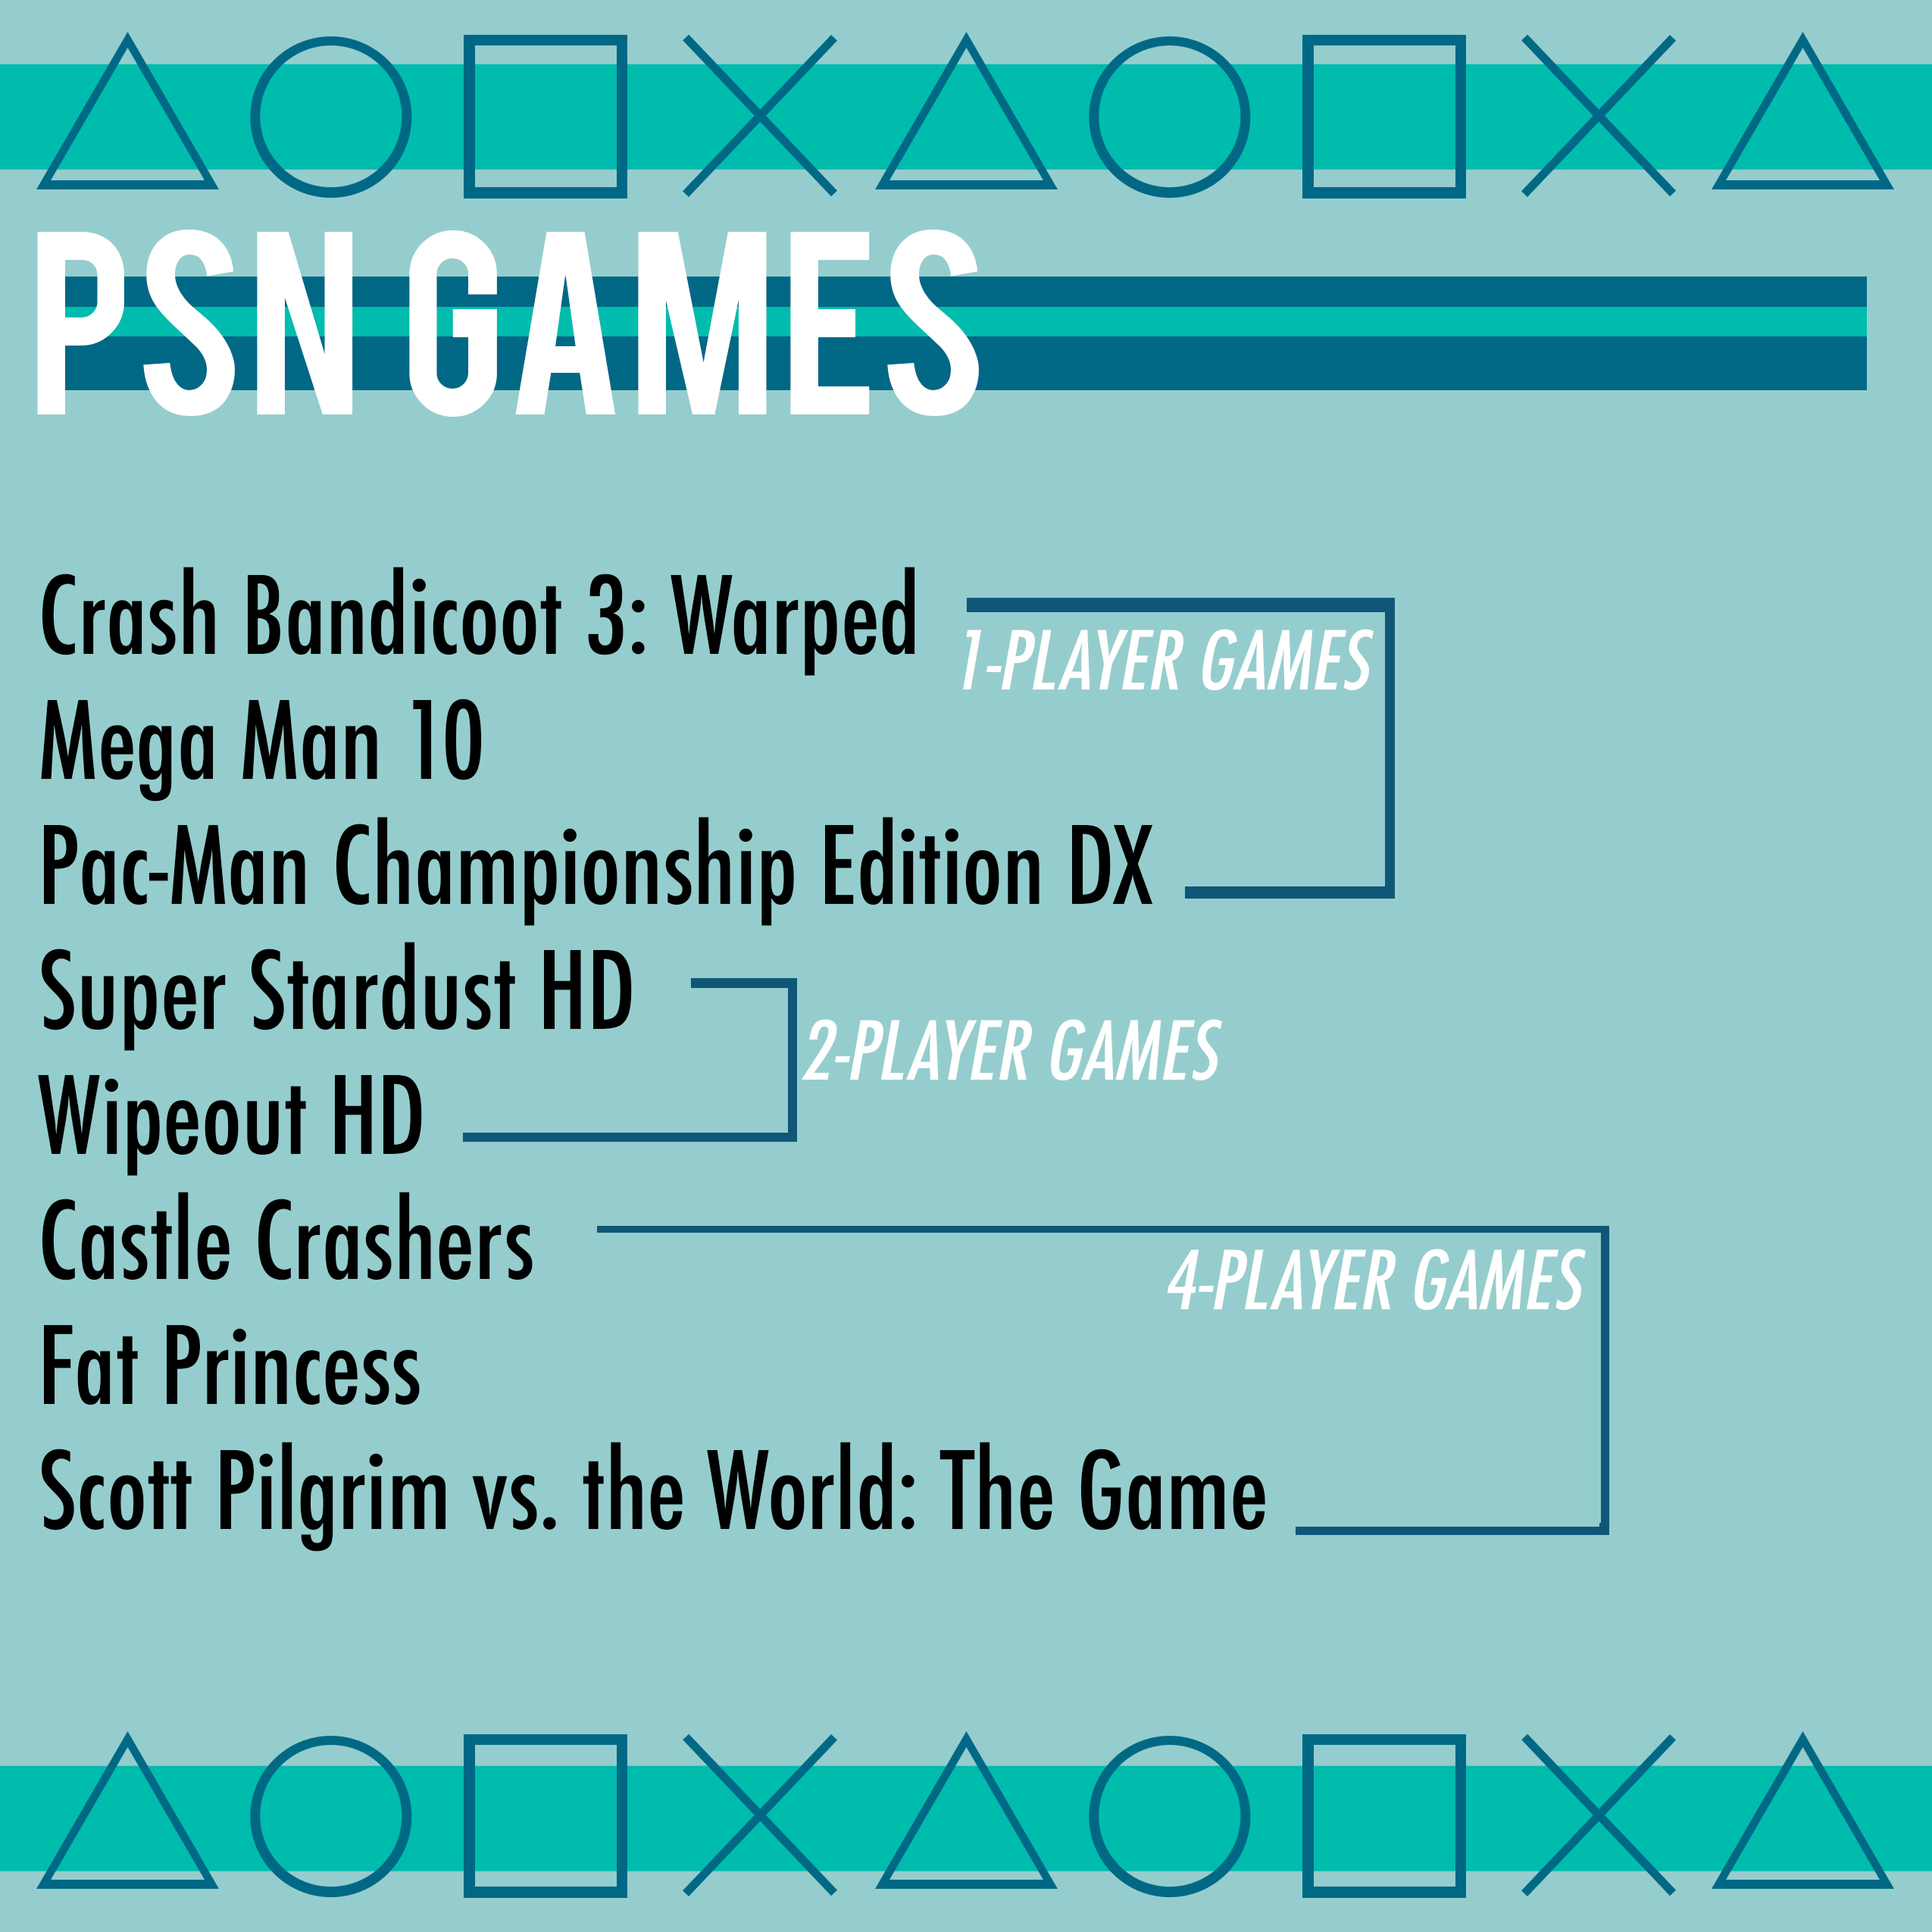 PSN Games at the ASLC